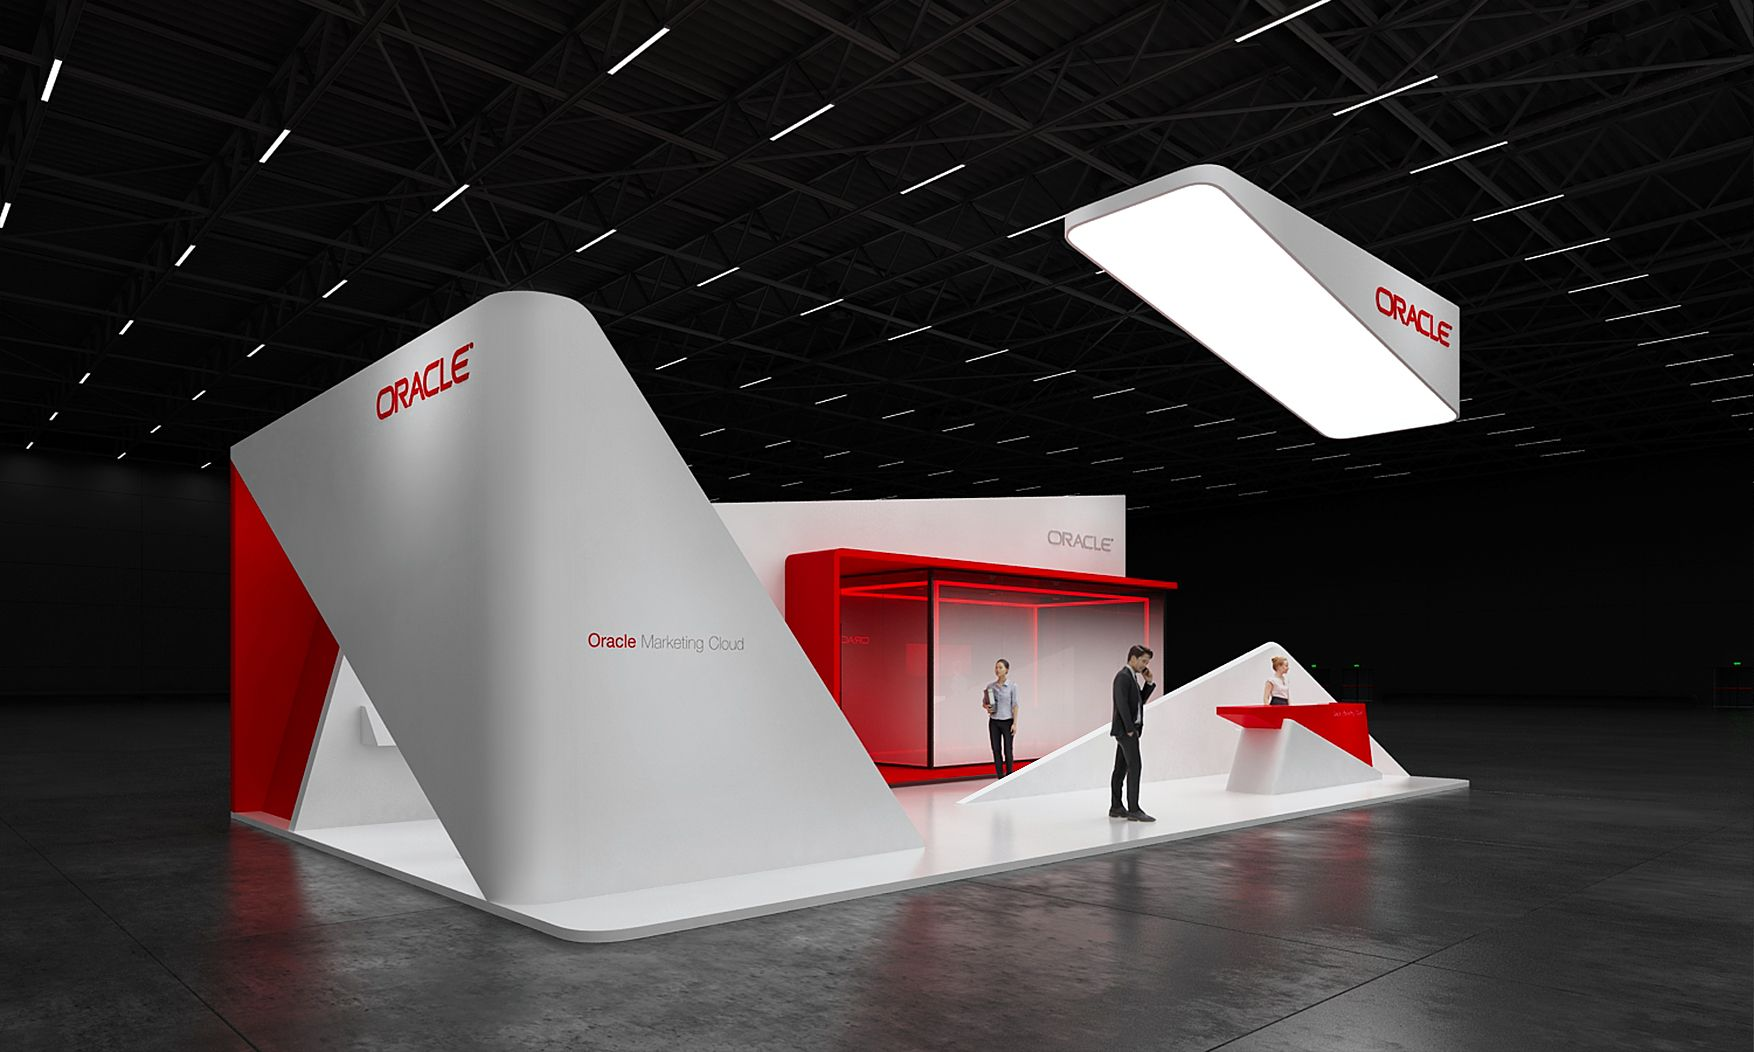 Exhibition Stand Design Ideas : Oracle exhibition stand design idea gm stand design gm stand